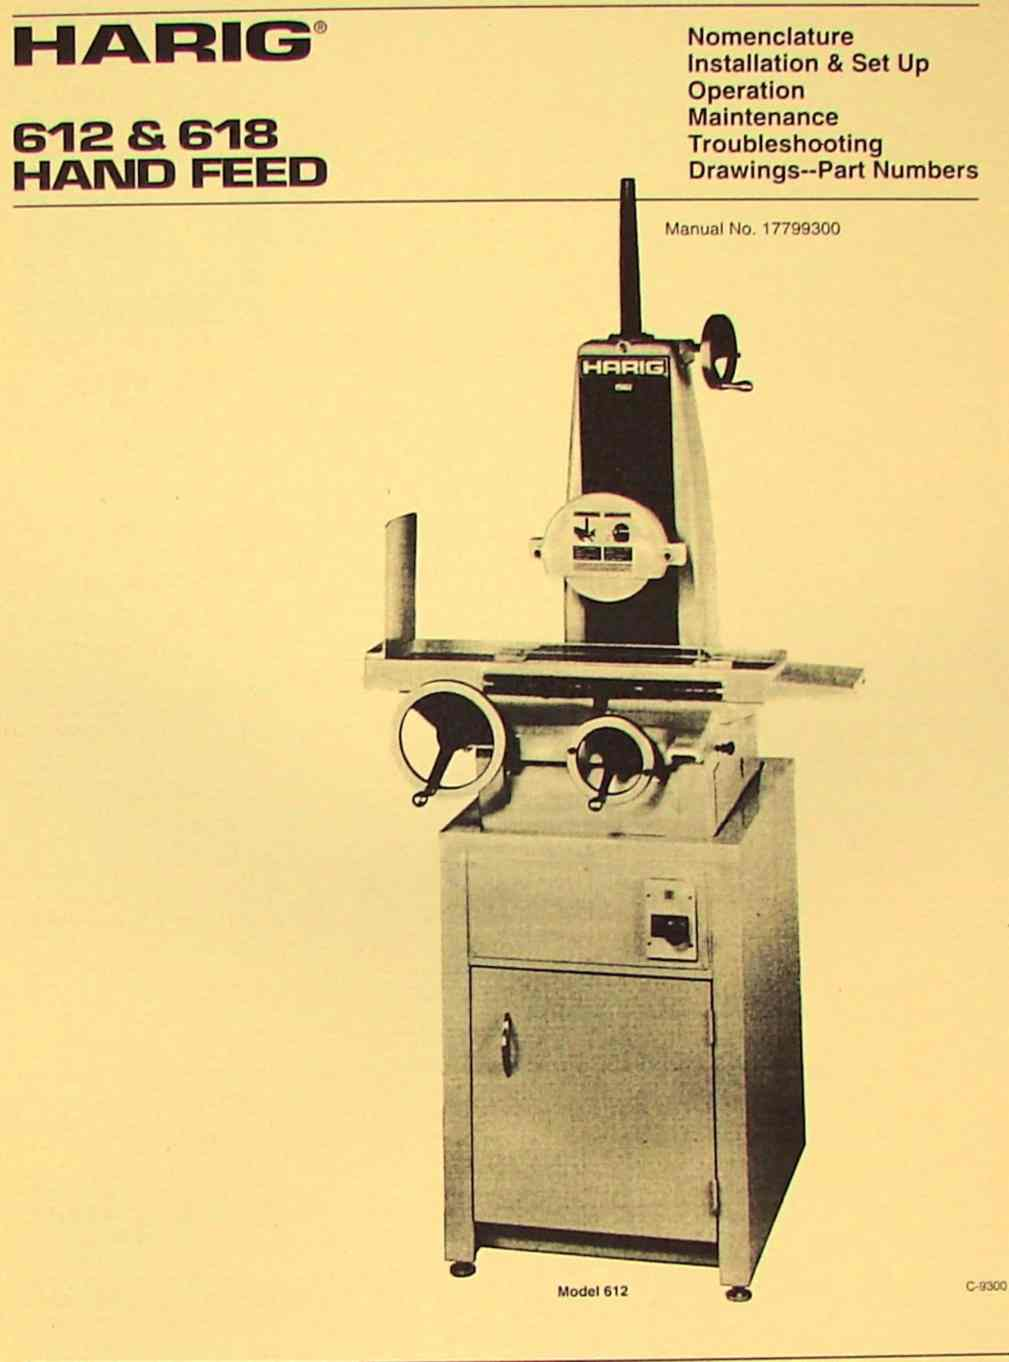 HARIG 612 & 618 Manual Hand Feed Surface Grinder Manual | Ozark Tool Manuals & Books